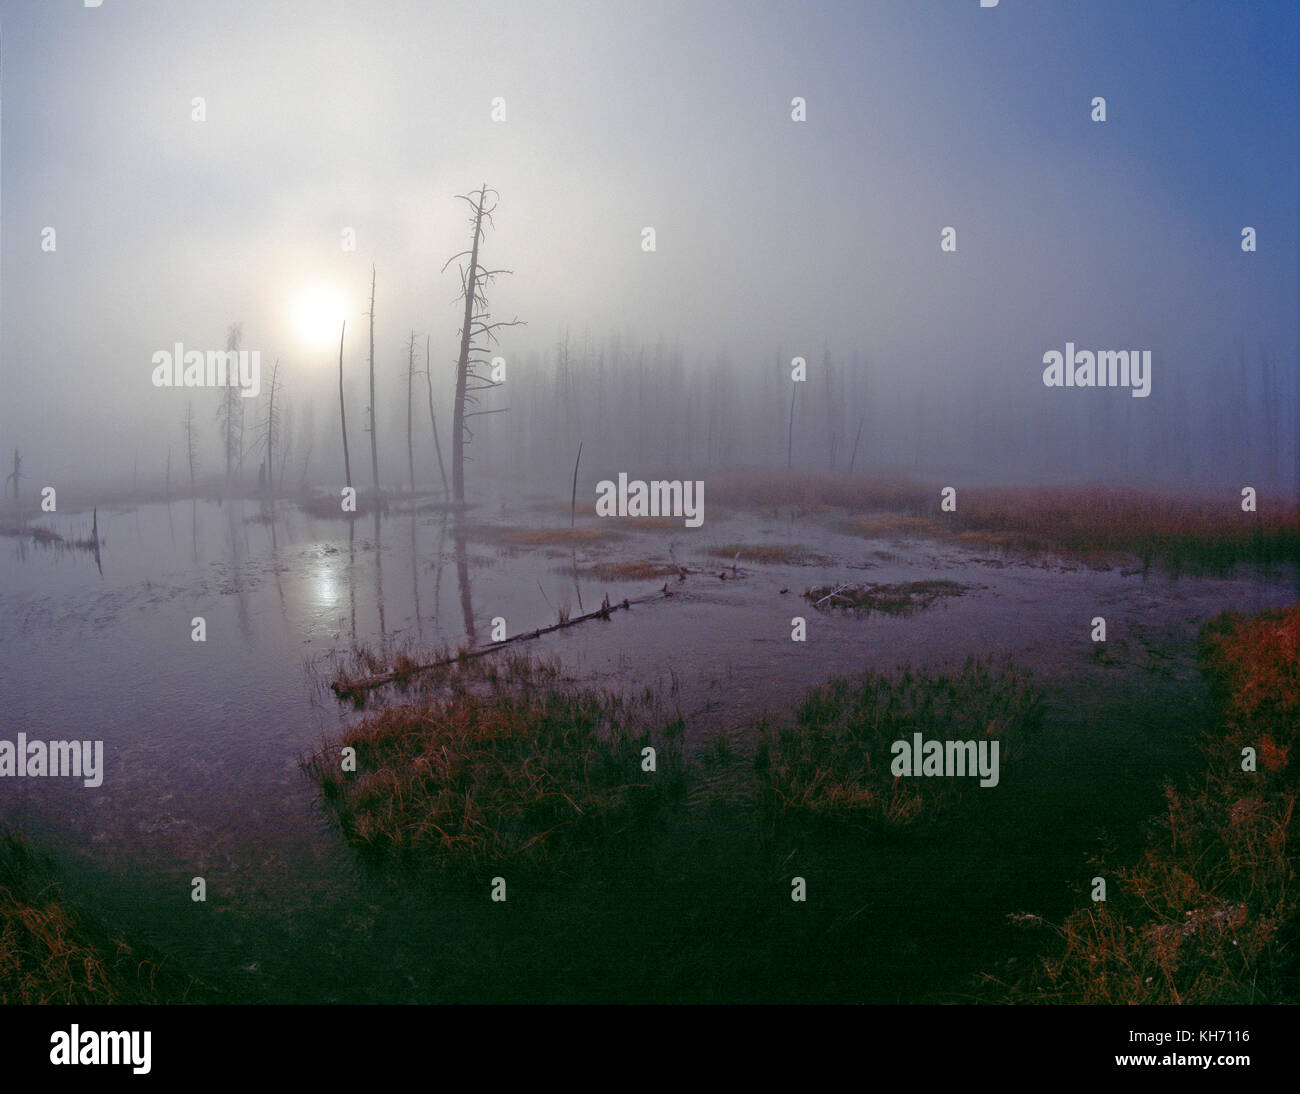 USA. Wyoming. Yellowstone National Park. Lower Geyser Basin. Misty dawn over Tangle Creek. - Stock Image